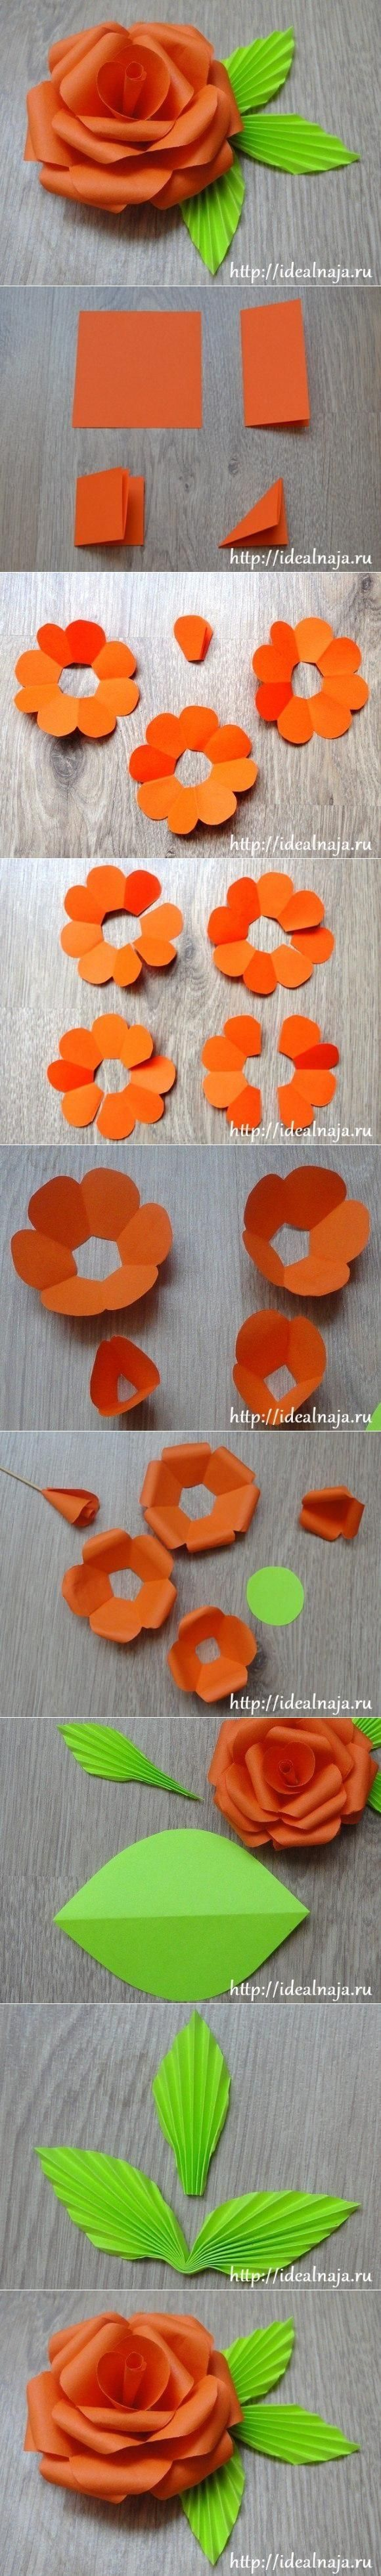 Diy flowers flowers diy crafts home made easy crafts craft idea diy flowers flowers diy crafts home made easy crafts craft idea crafts ideas diy ideas diy solutioingenieria Image collections